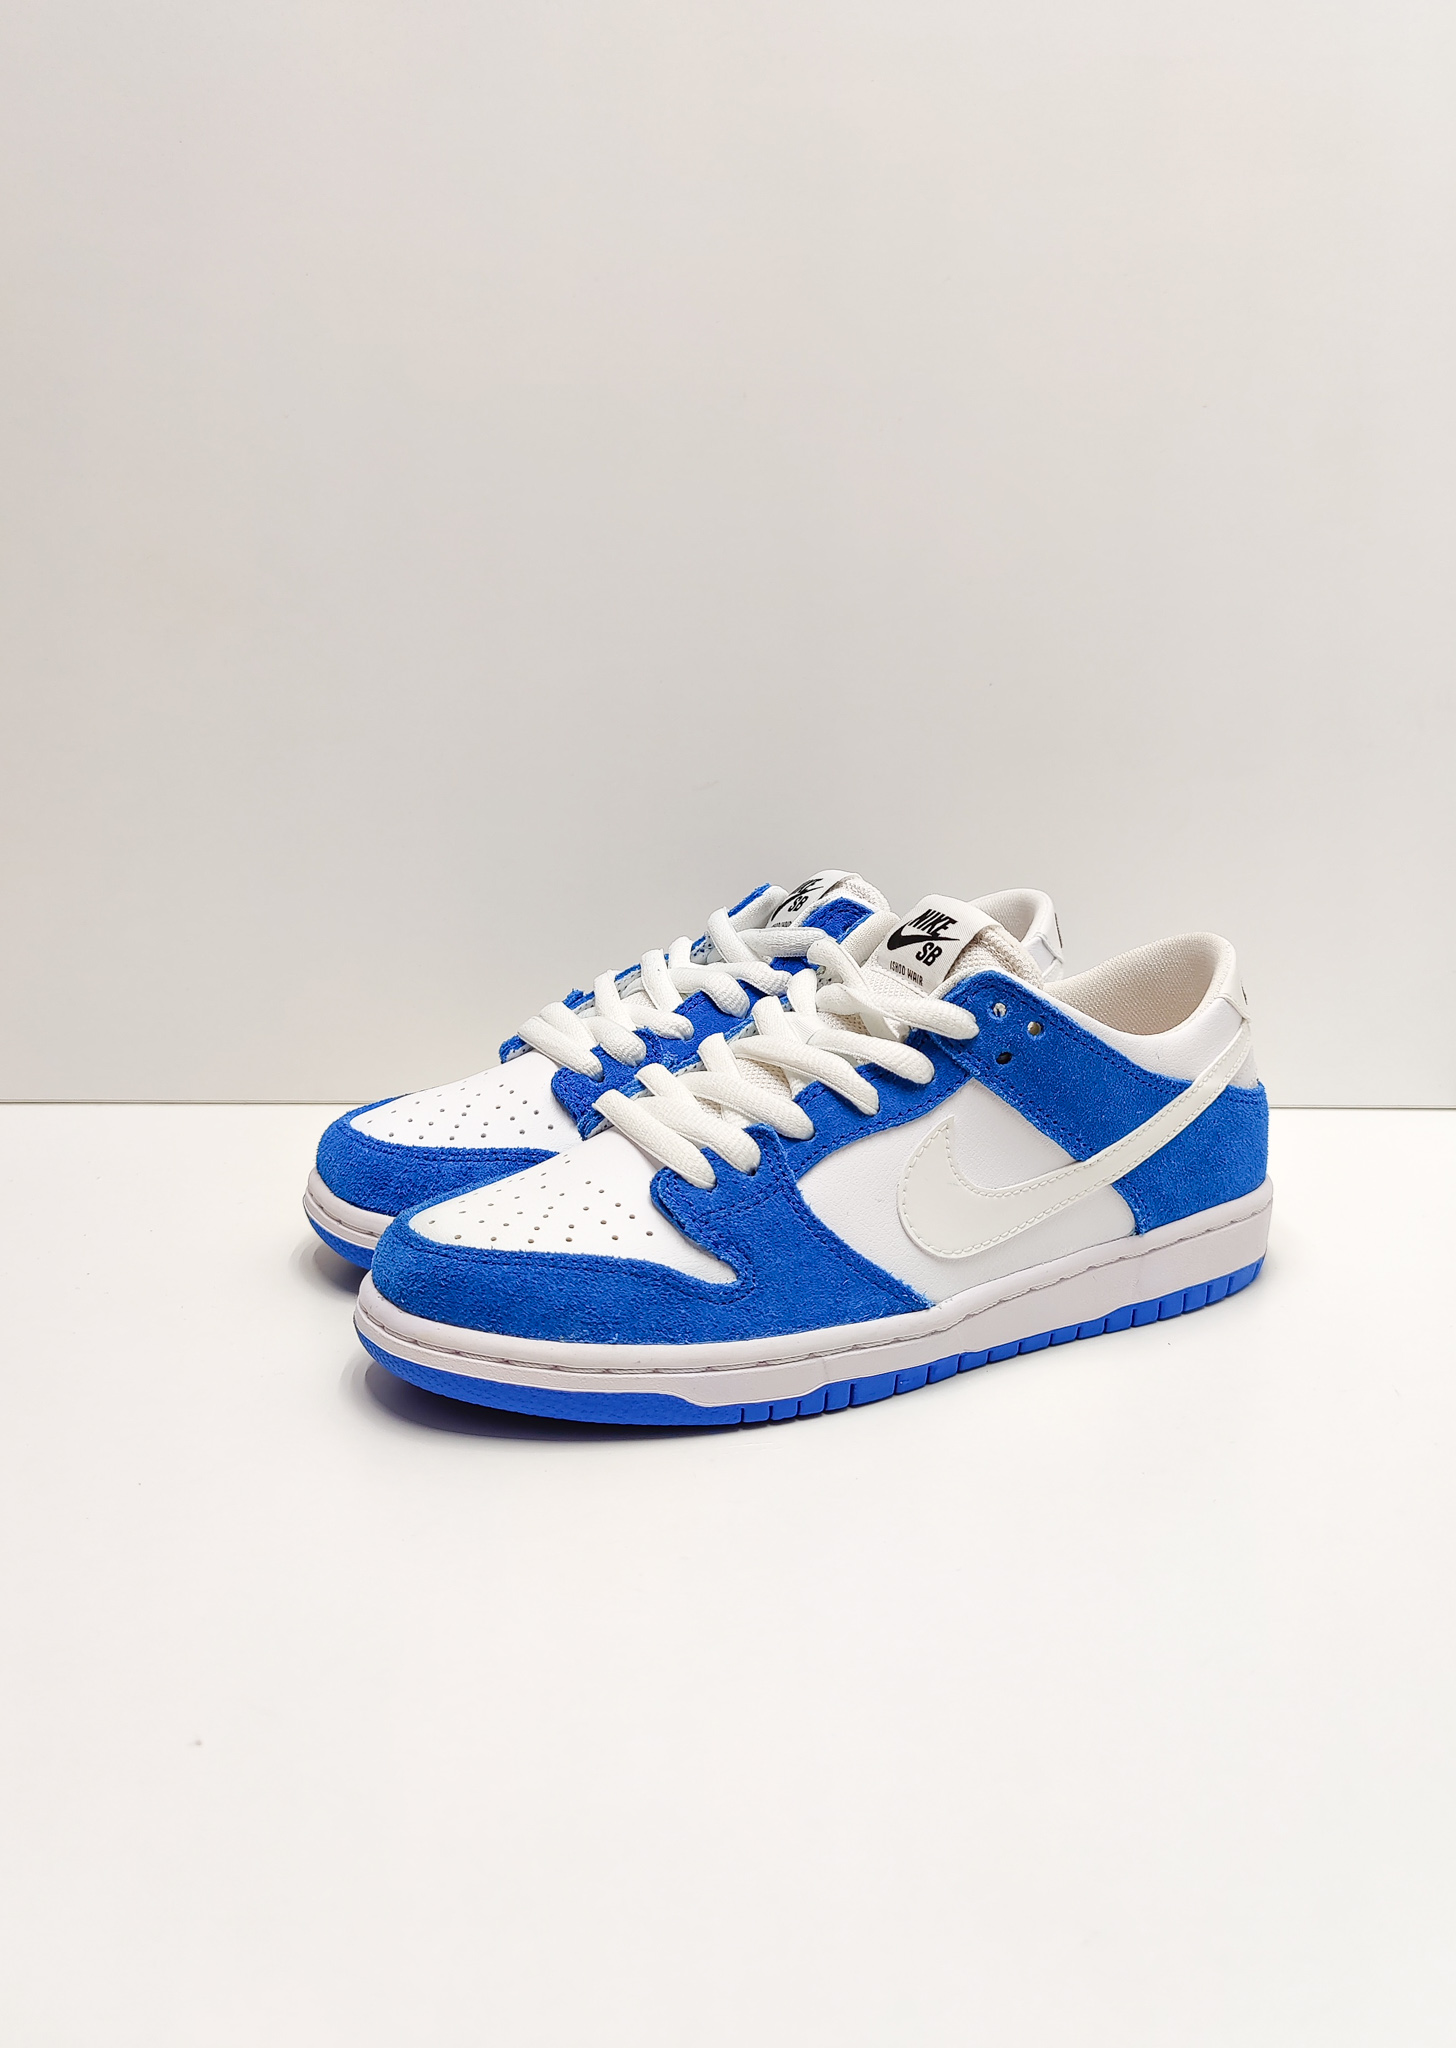 Nike SB Dunk Low Ishod Wair Blue Spark